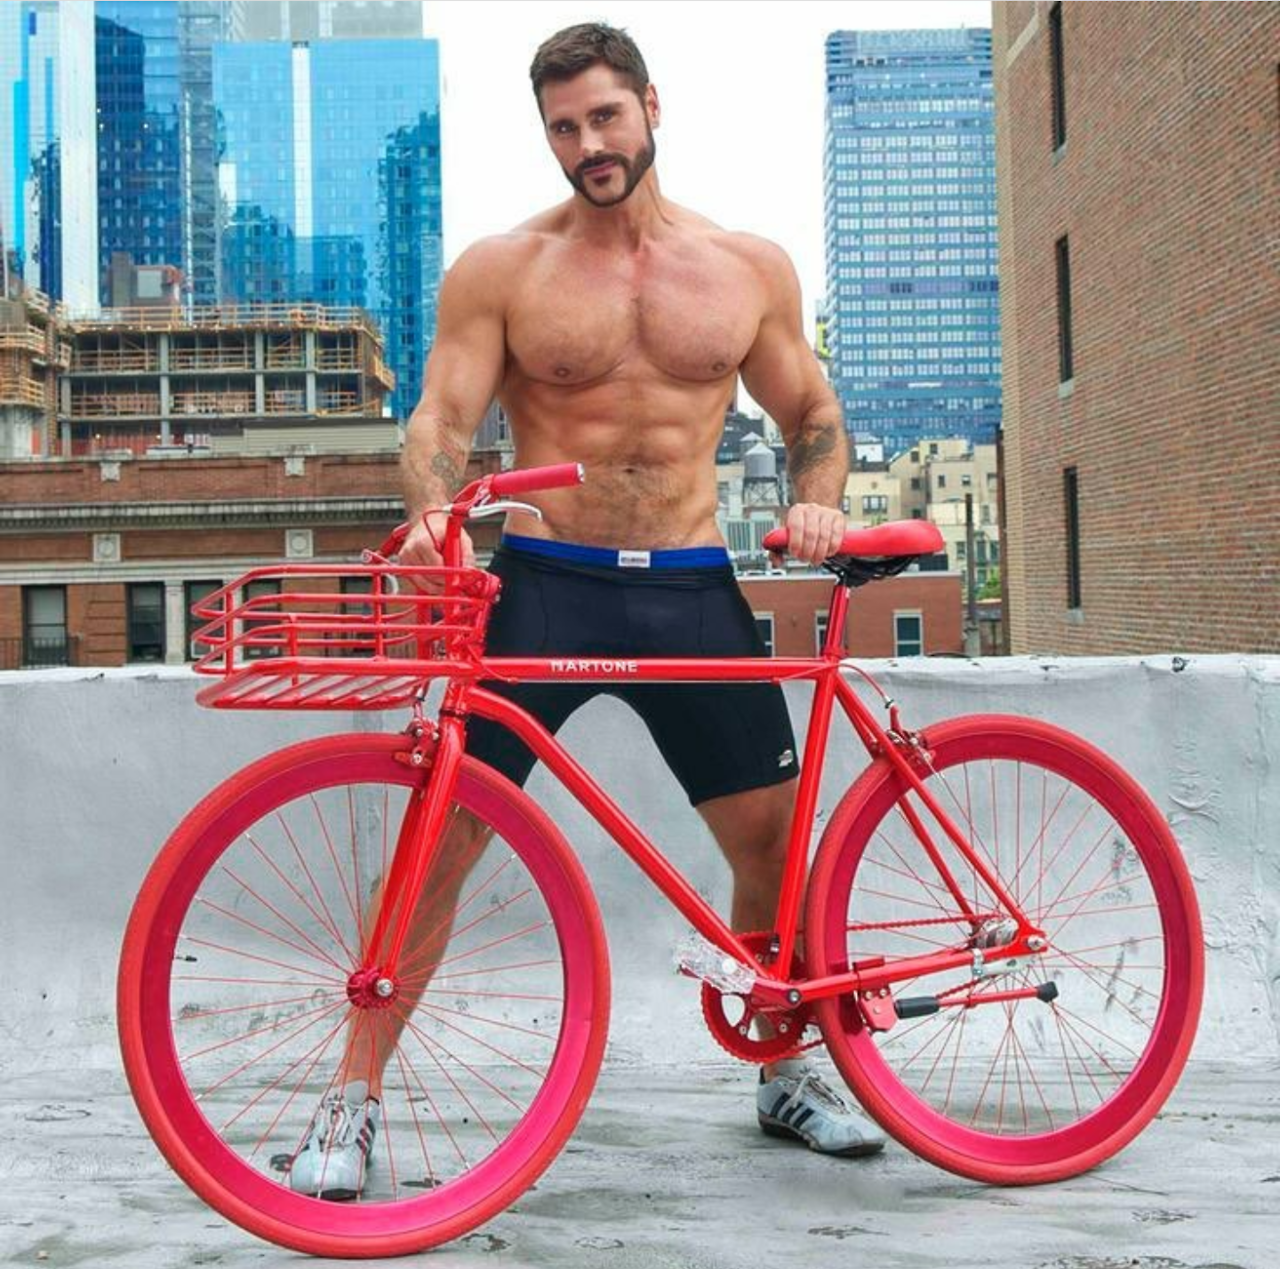 Gay naked bicyclist